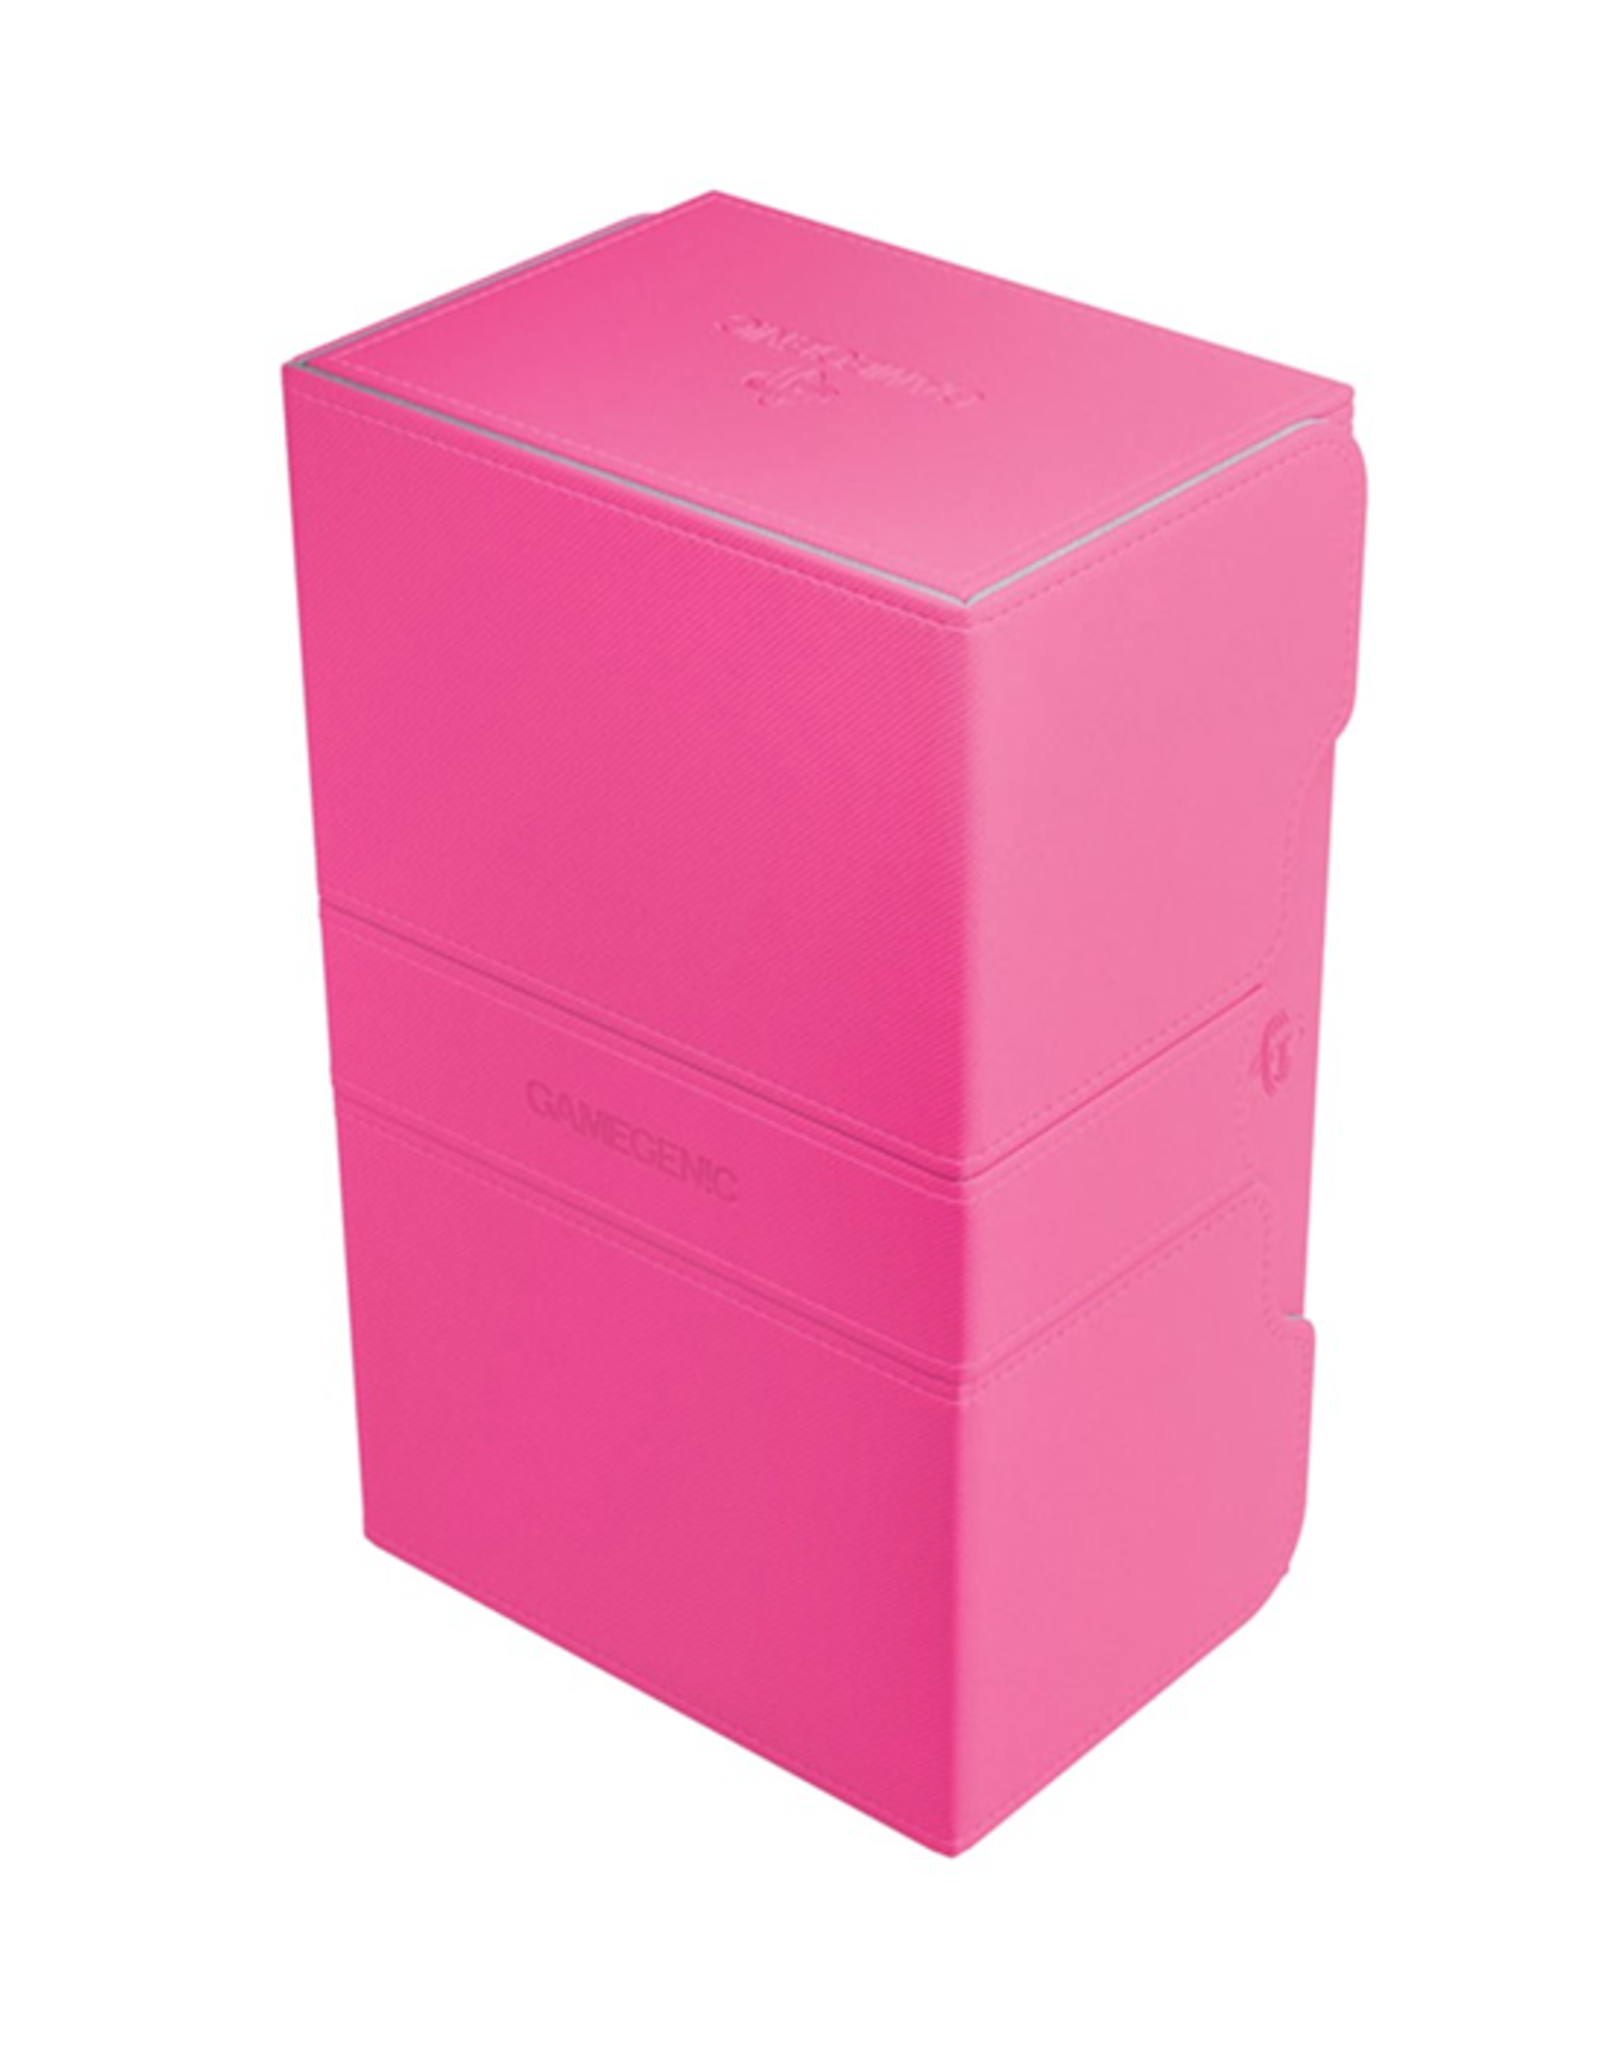 Gamegenic Gamegenic: Deck Box - Stronghold 200+ - Pink